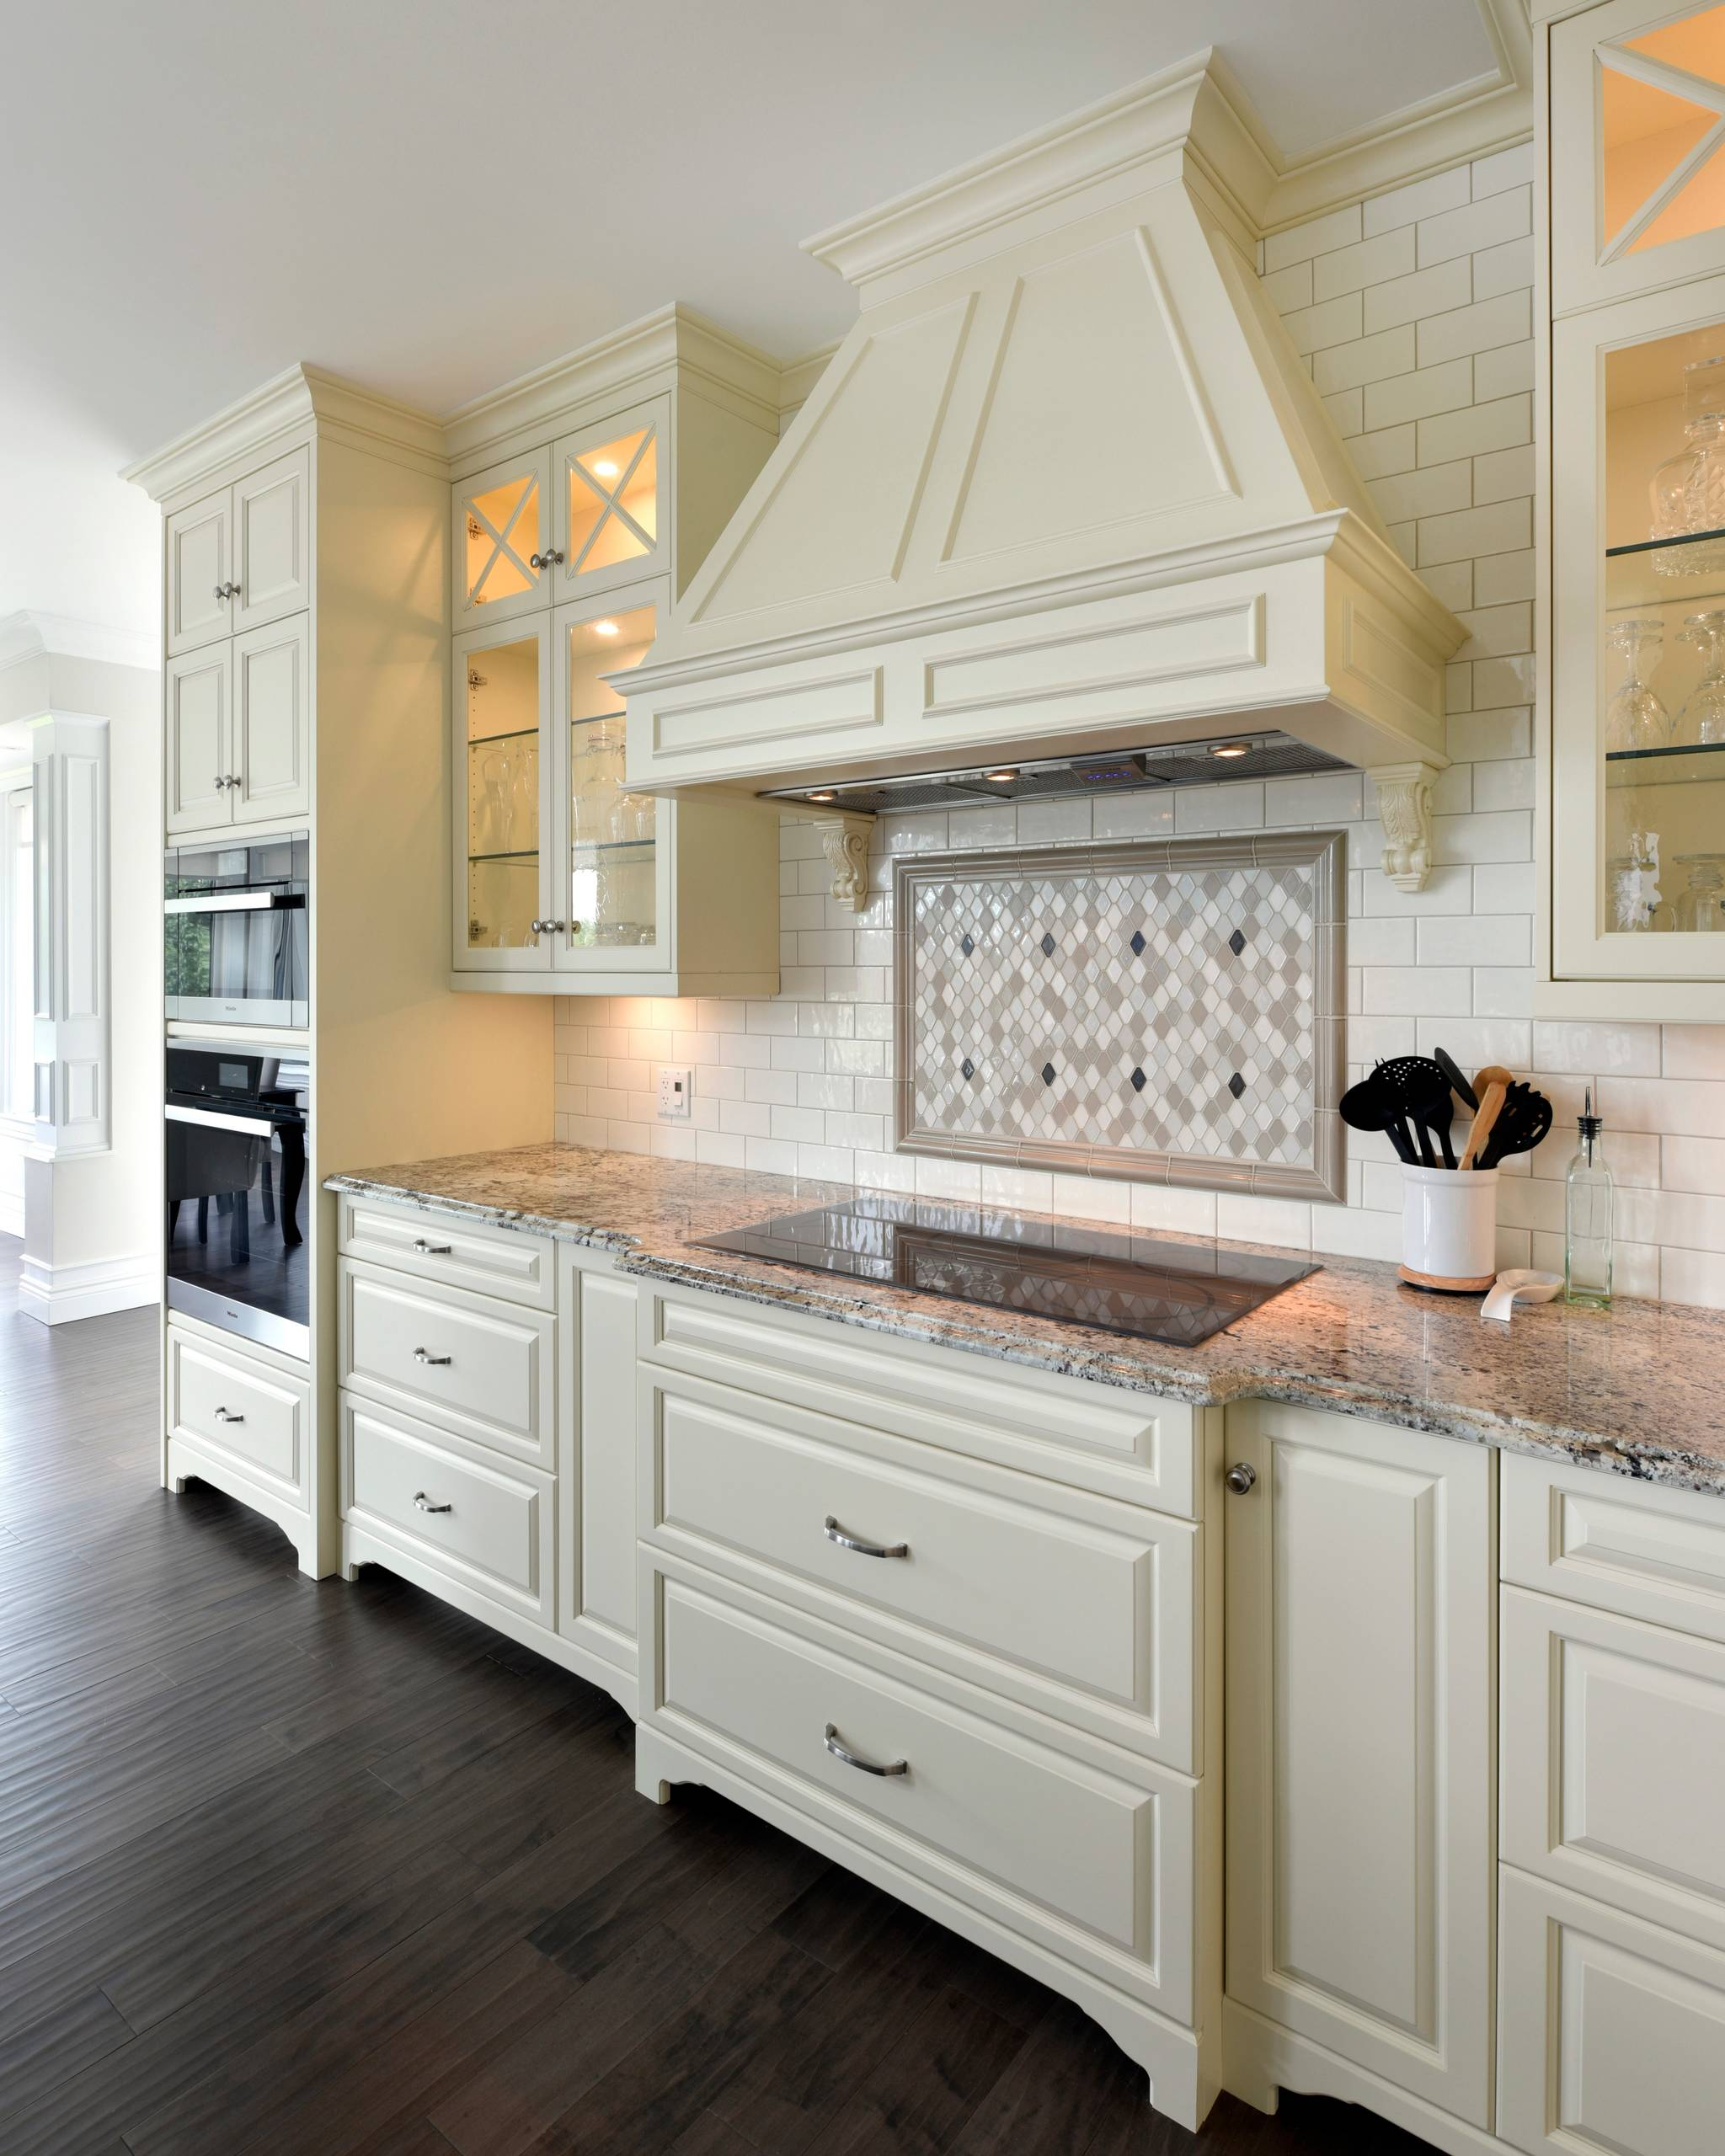 Glass cabinets with glass shelving in a traditional kitchen